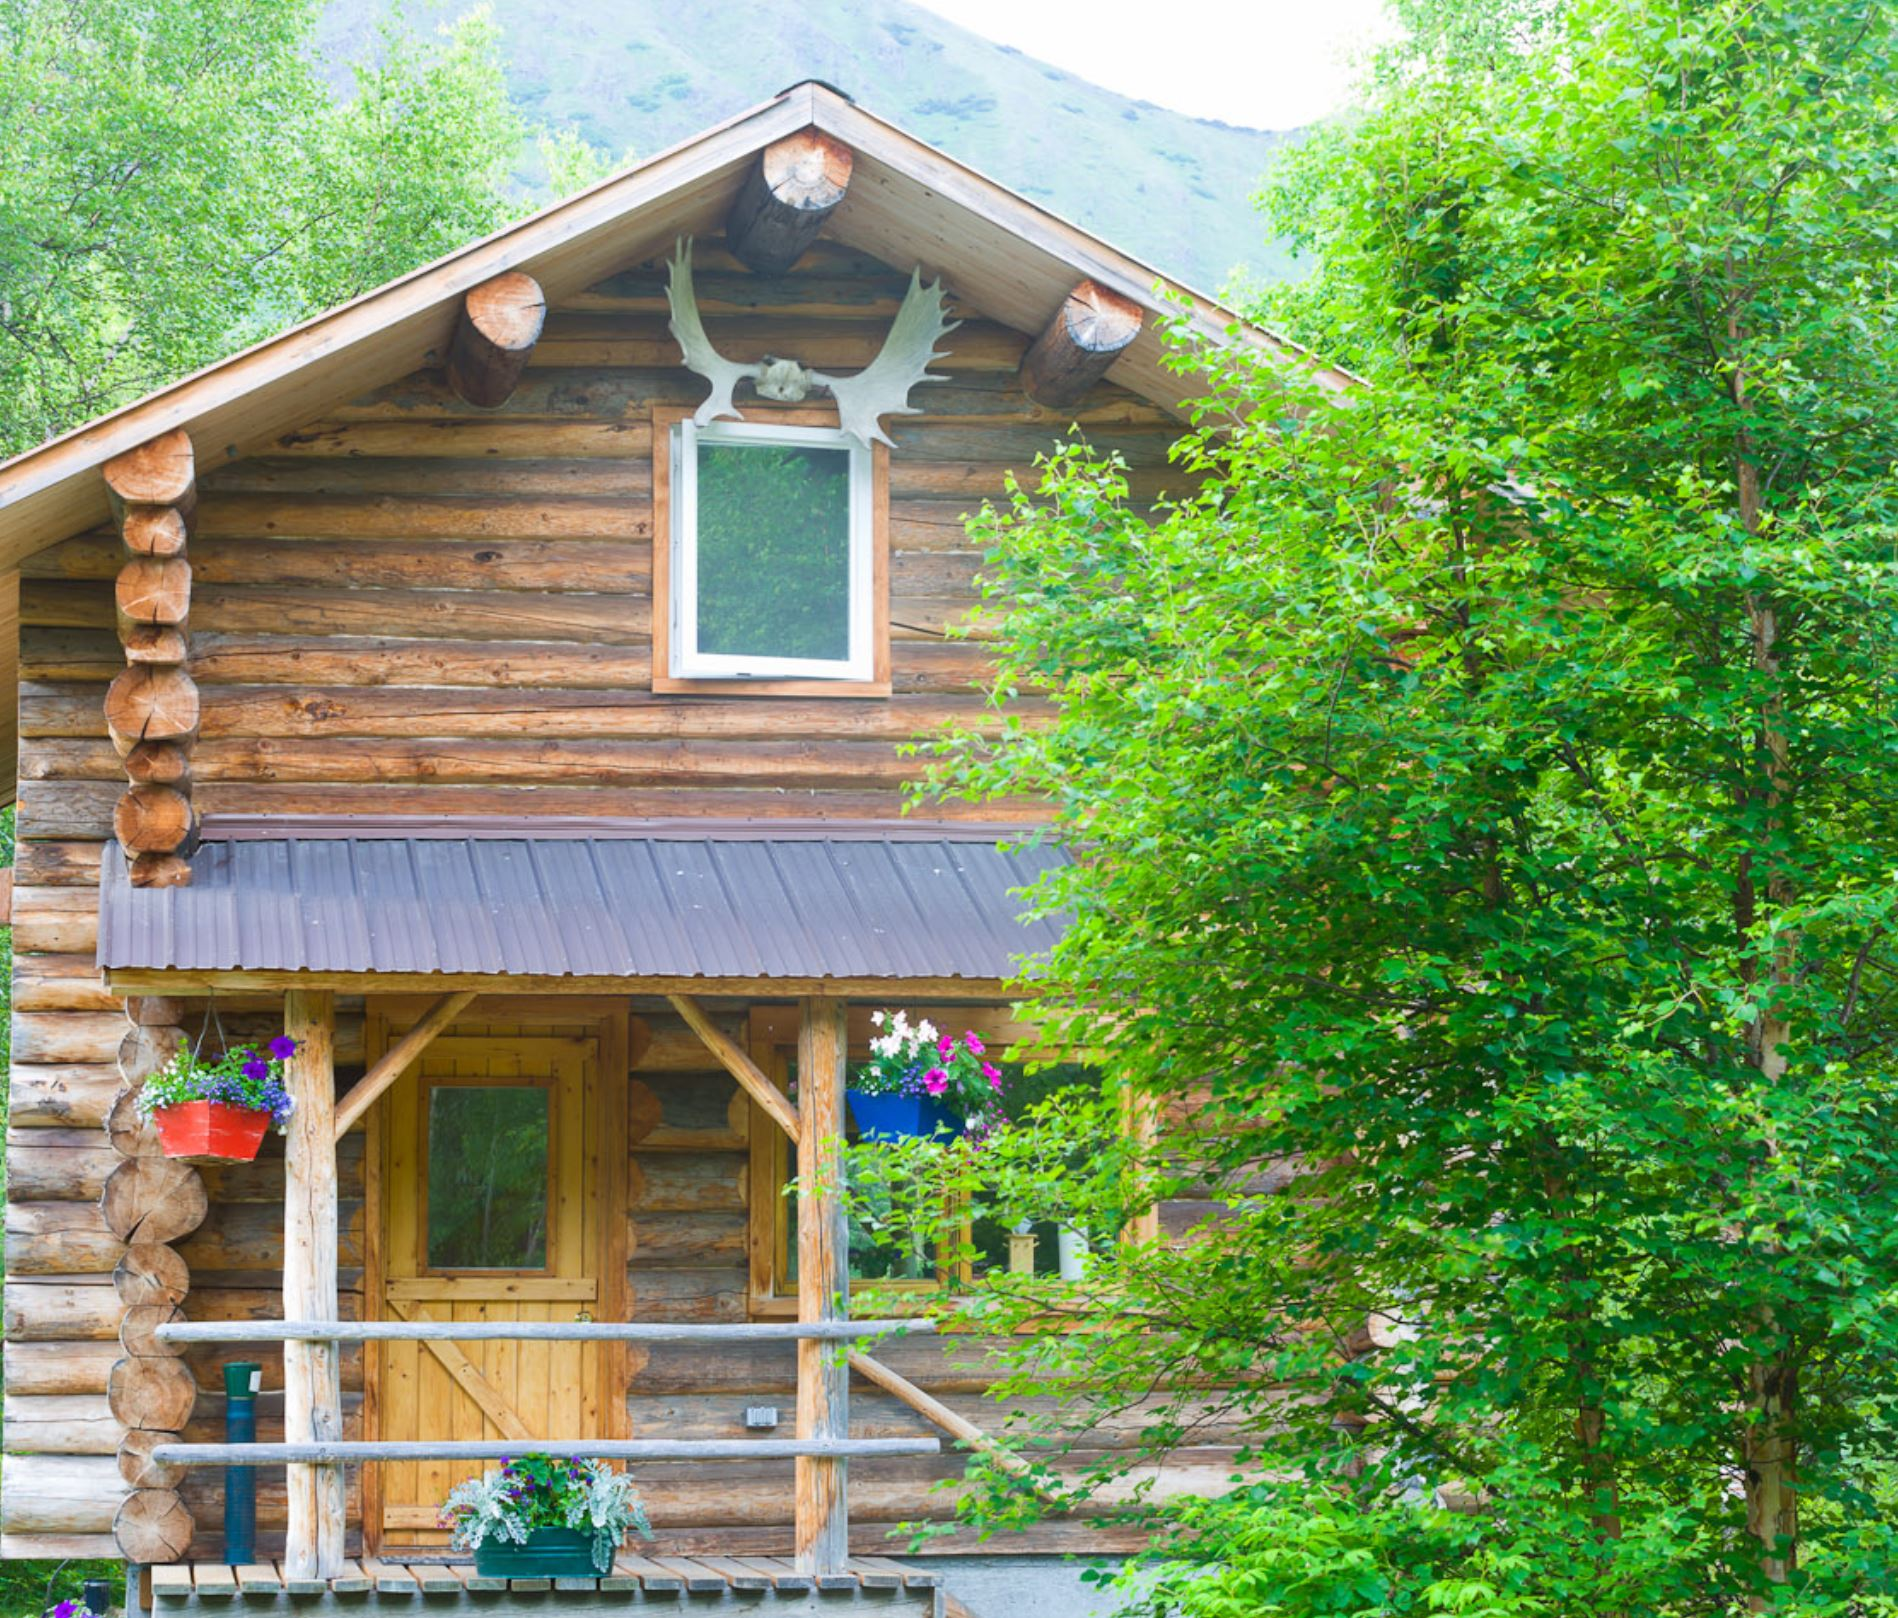 overlook alaska overnight asp tye rentals affordable by rental click cabin list a cabins view larger river for vacation